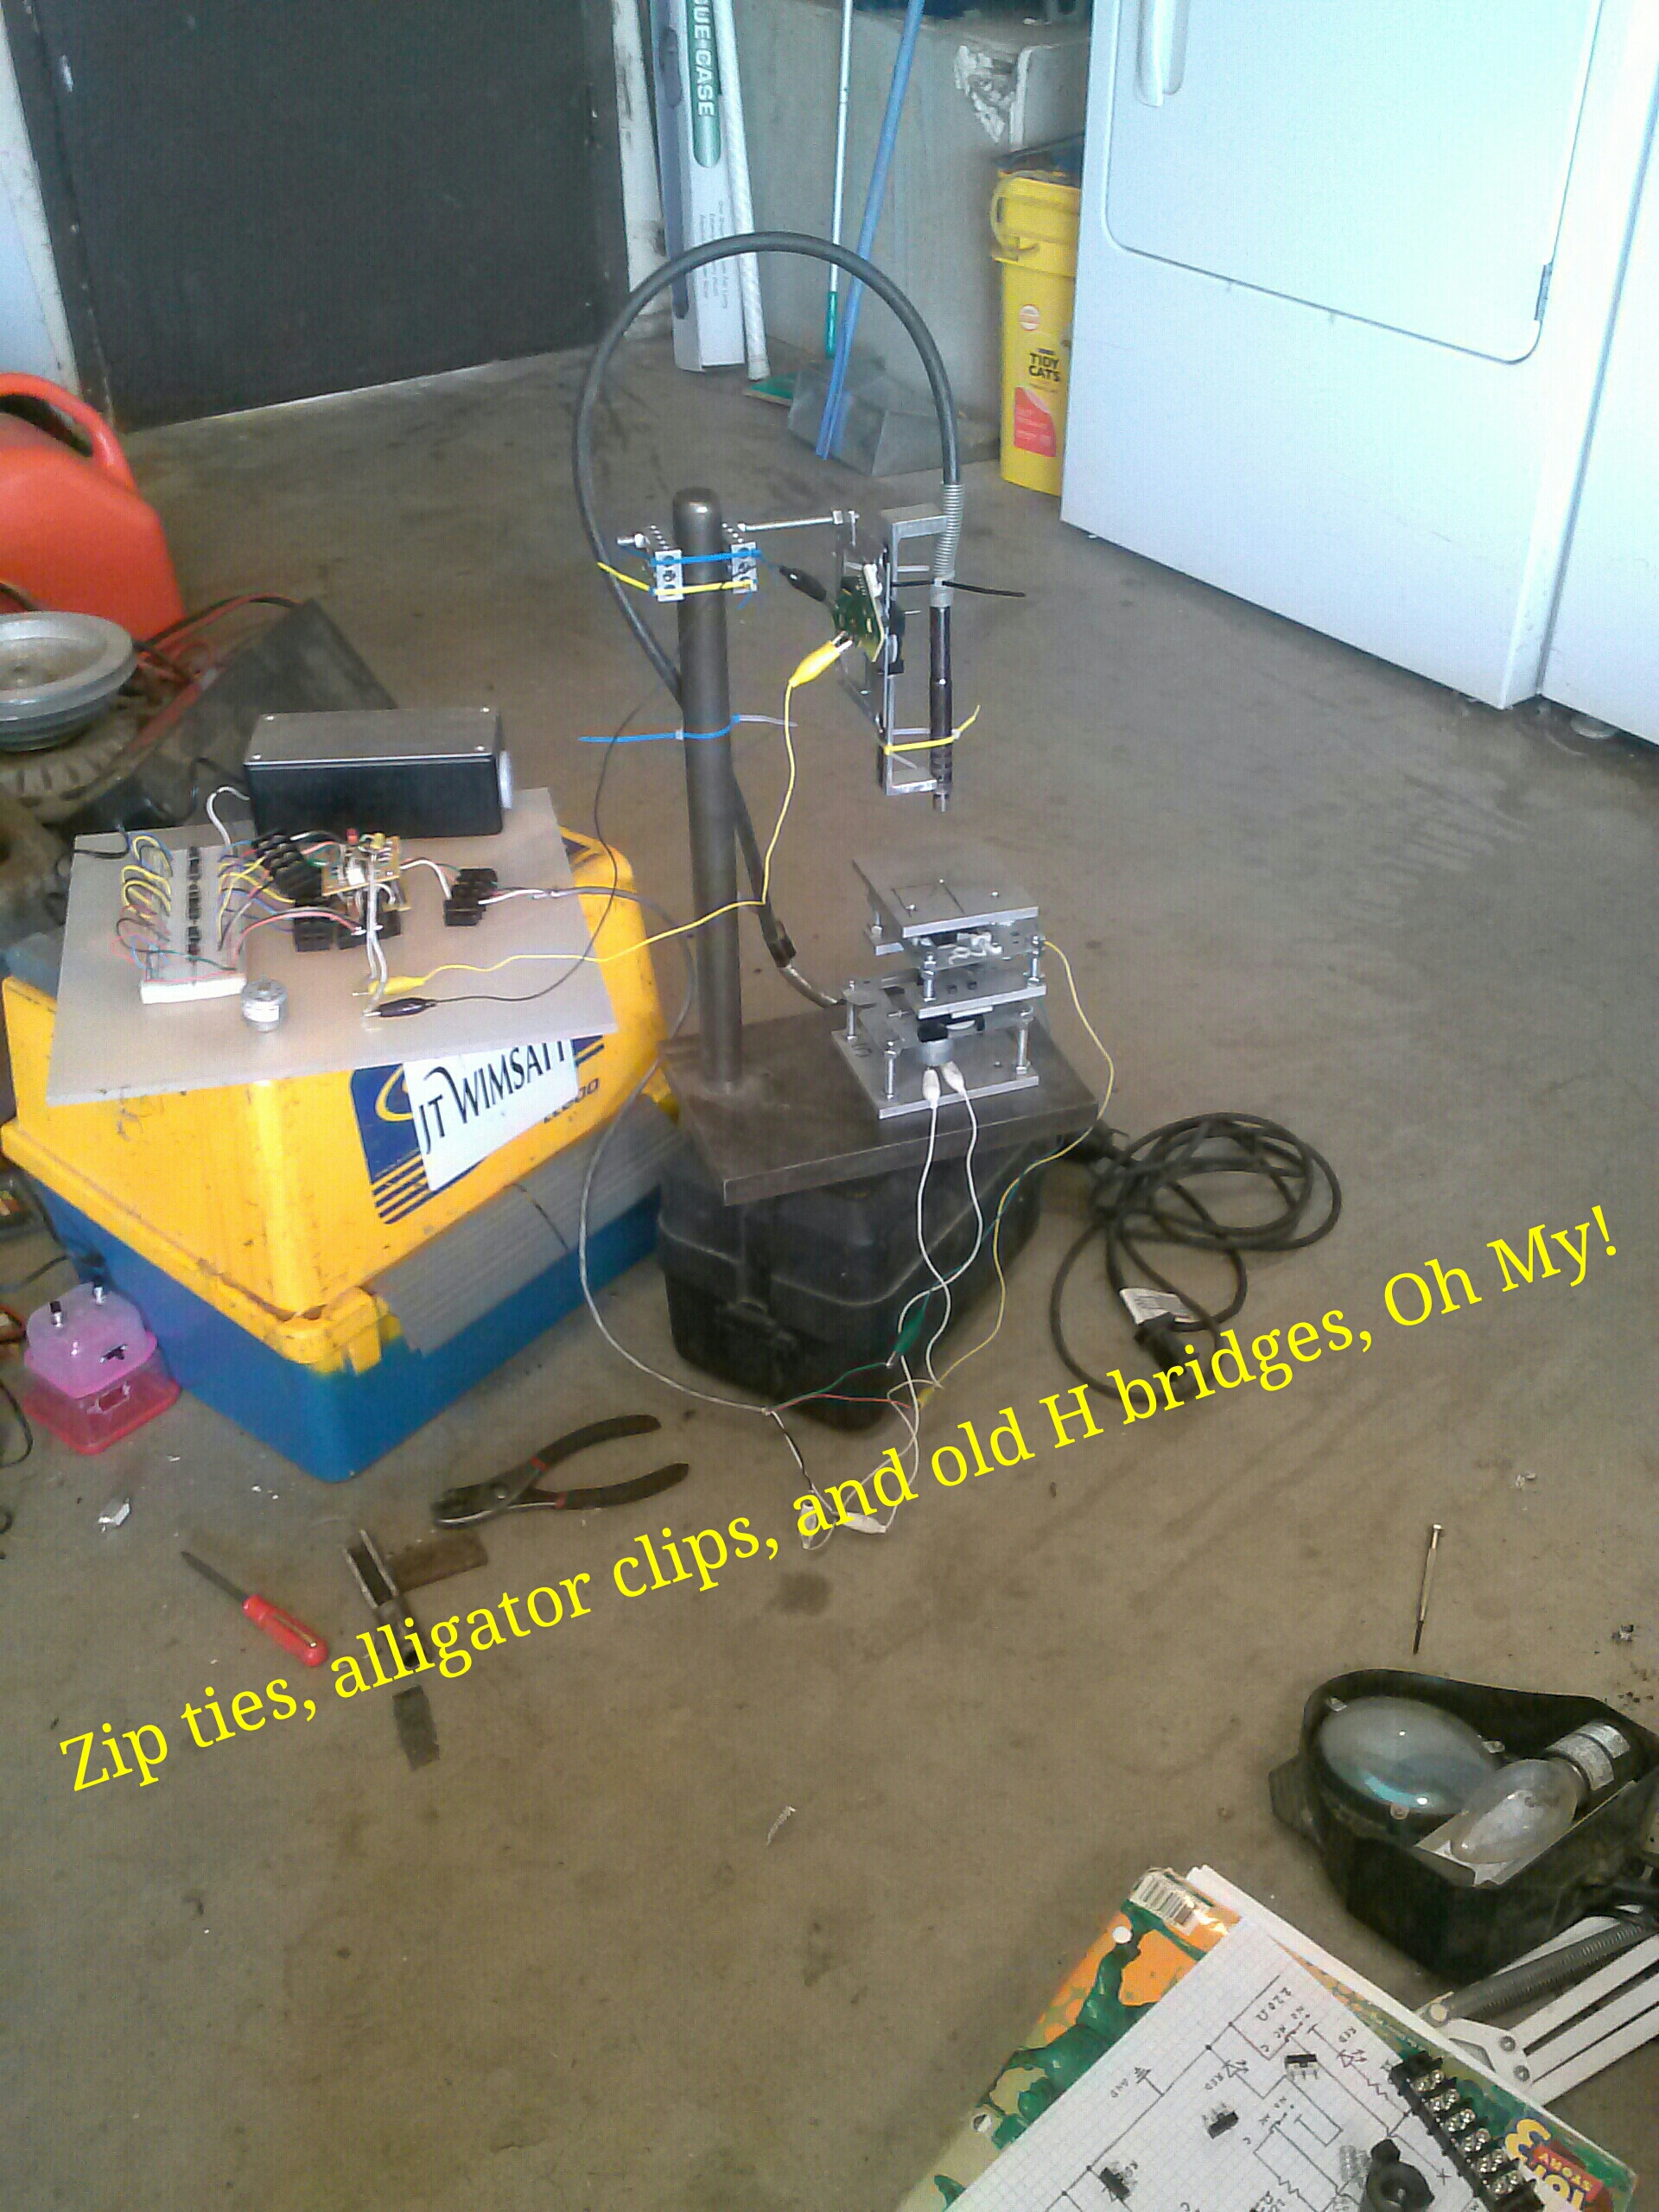 Basic beginners mini 3 axis CNC mill